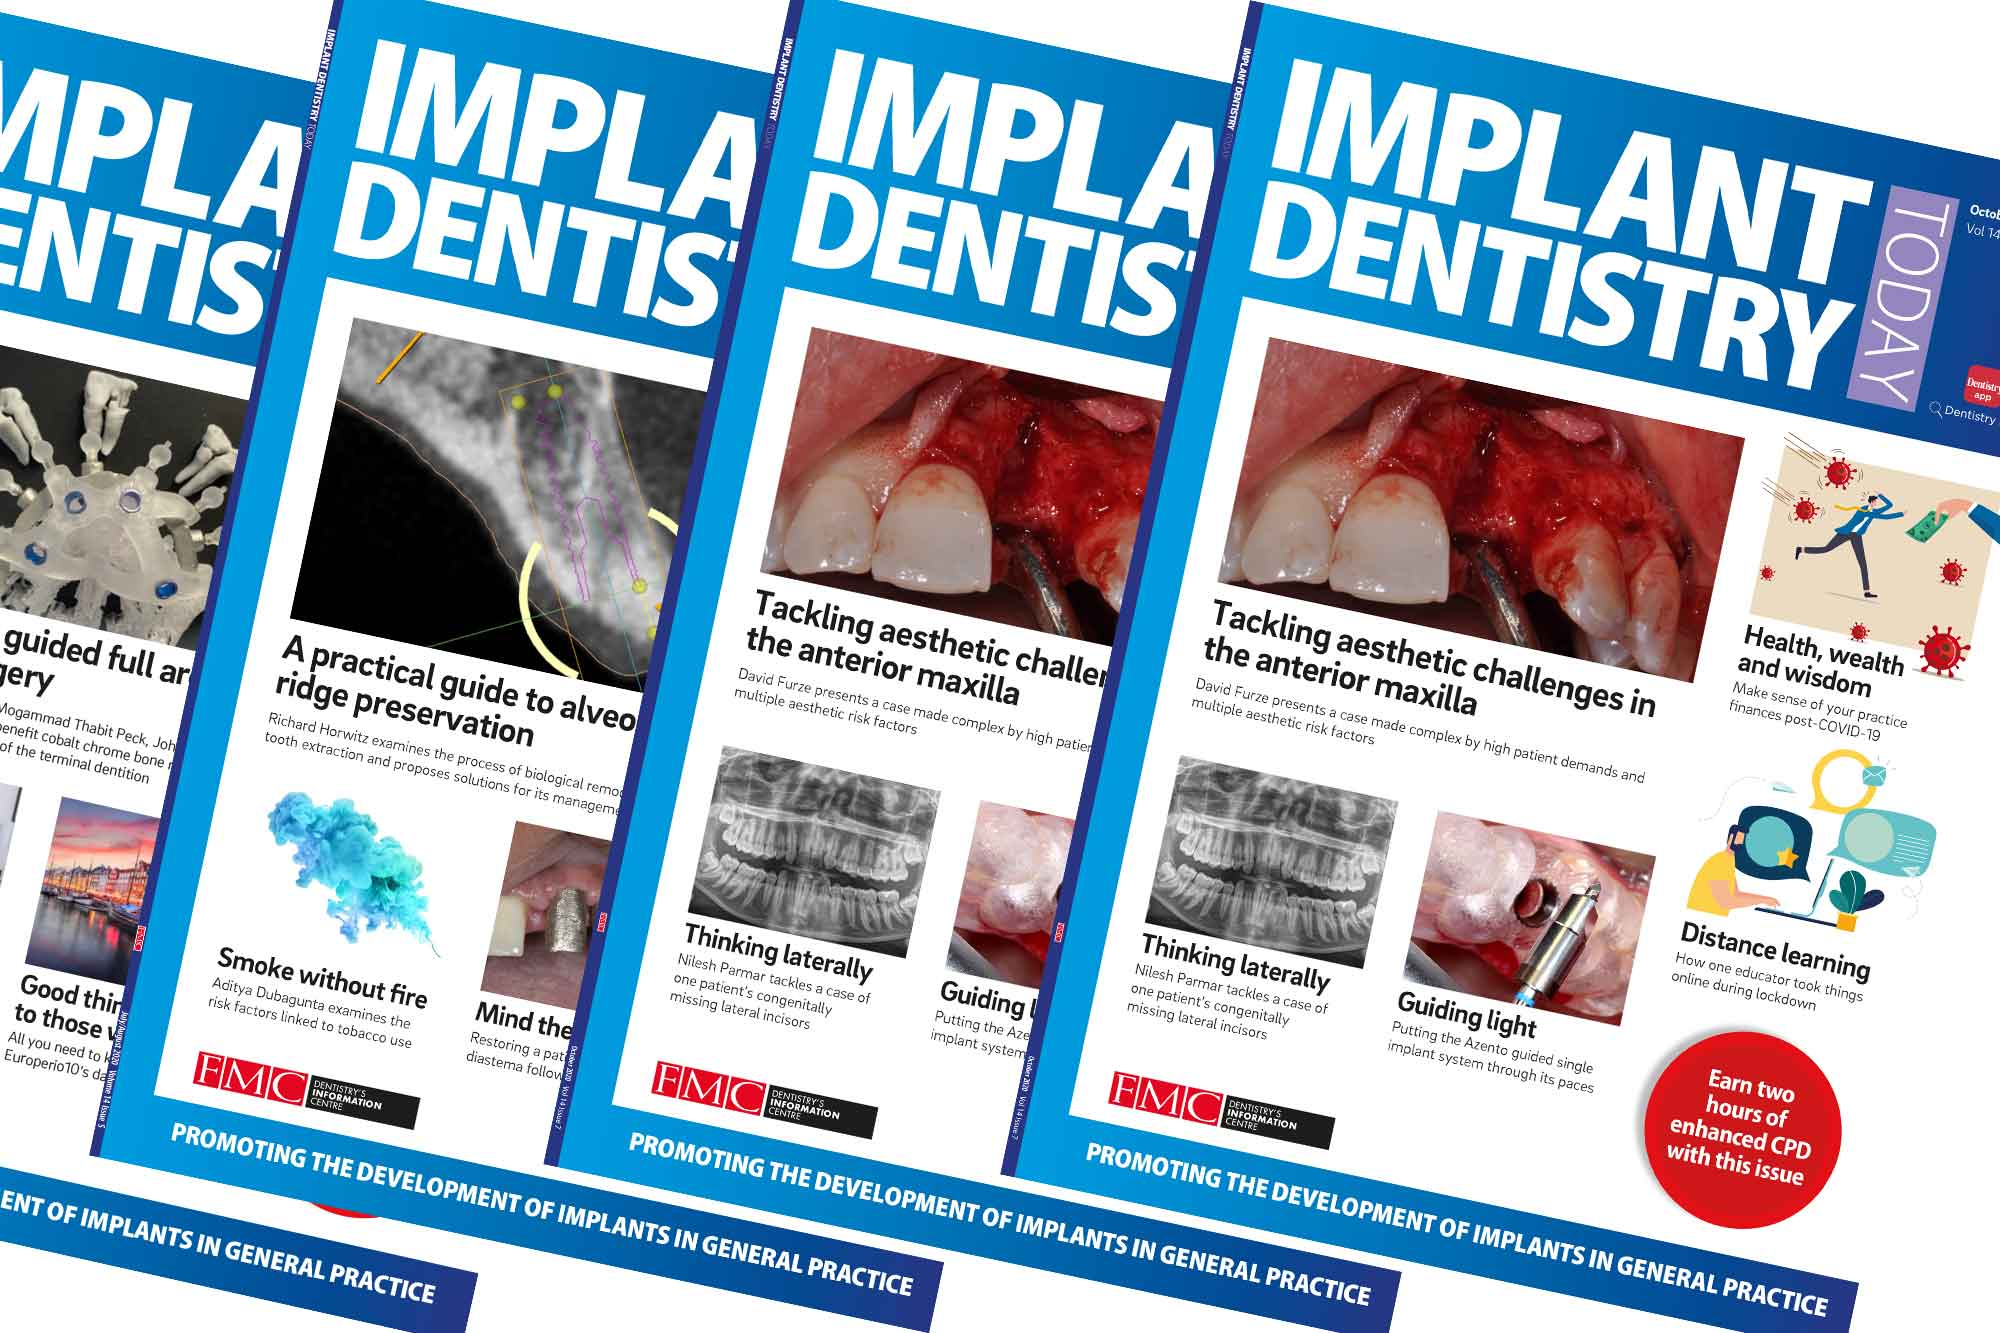 The FMC journal Implant Dentistry Today is joining the digital revolution next month as it adopts a new format for a new year